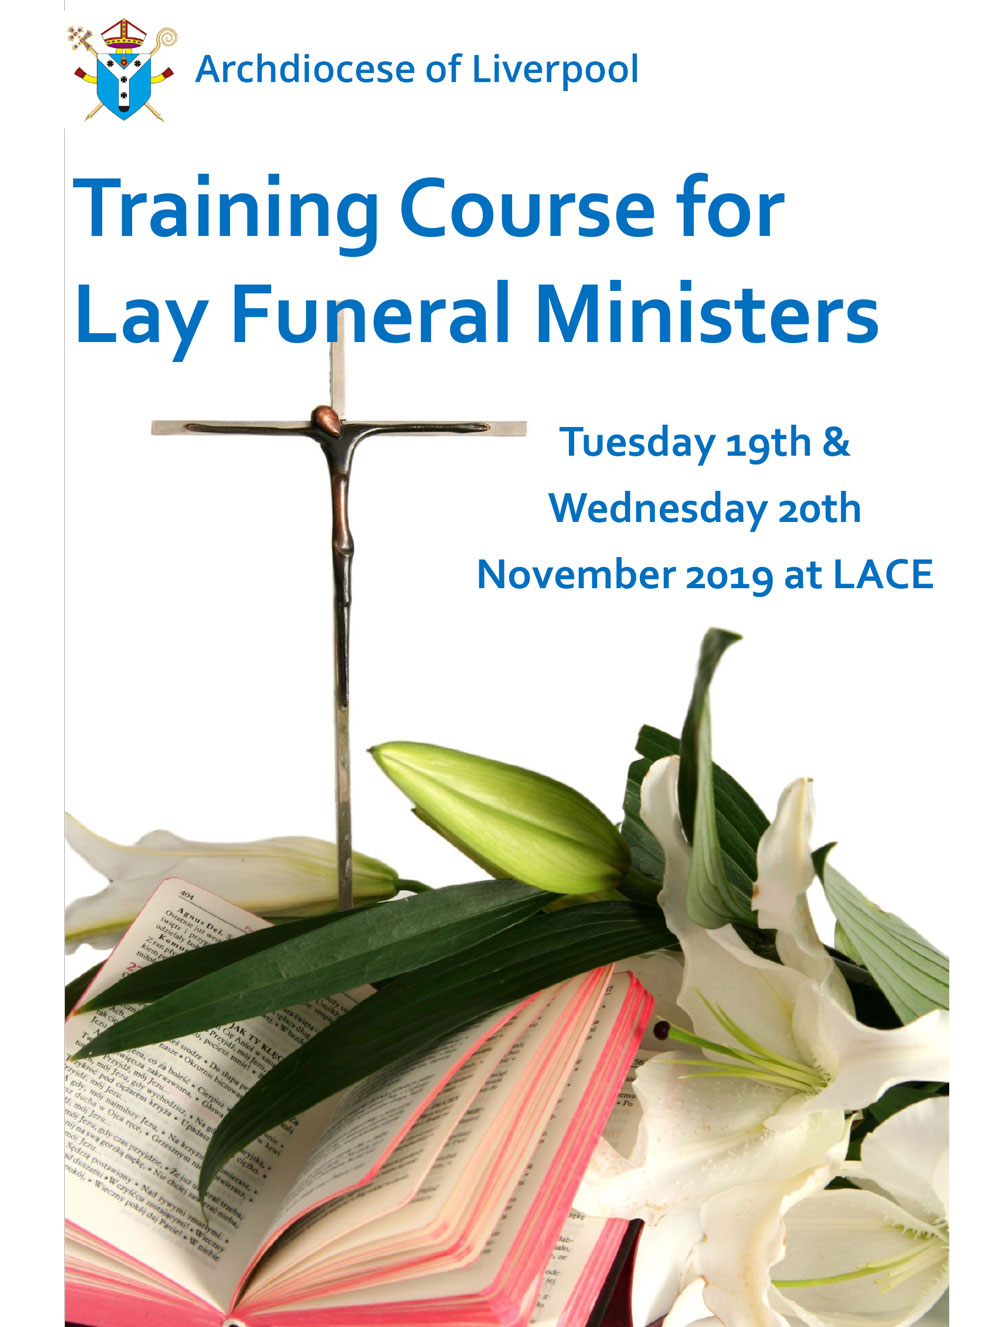 Lay Funeral Ministers Training Course Leaflet November 2019 1